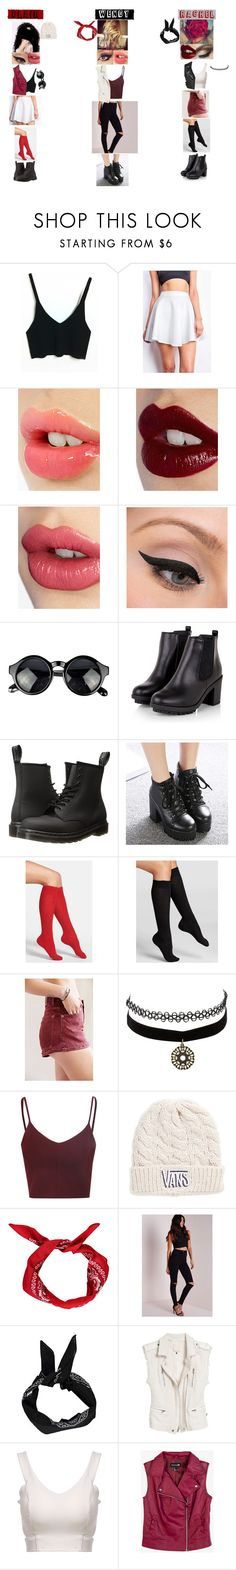 """Black,White,Red:A 90's Spirit"" by glee2shake ❤ liked on Polyvore featuring Charlotte Tilbury, LORAC, Dr. Martens, Mancienne, Nordstrom, Falke, Urban Renewal, Charlotte Russe, Glamorous and Vans"